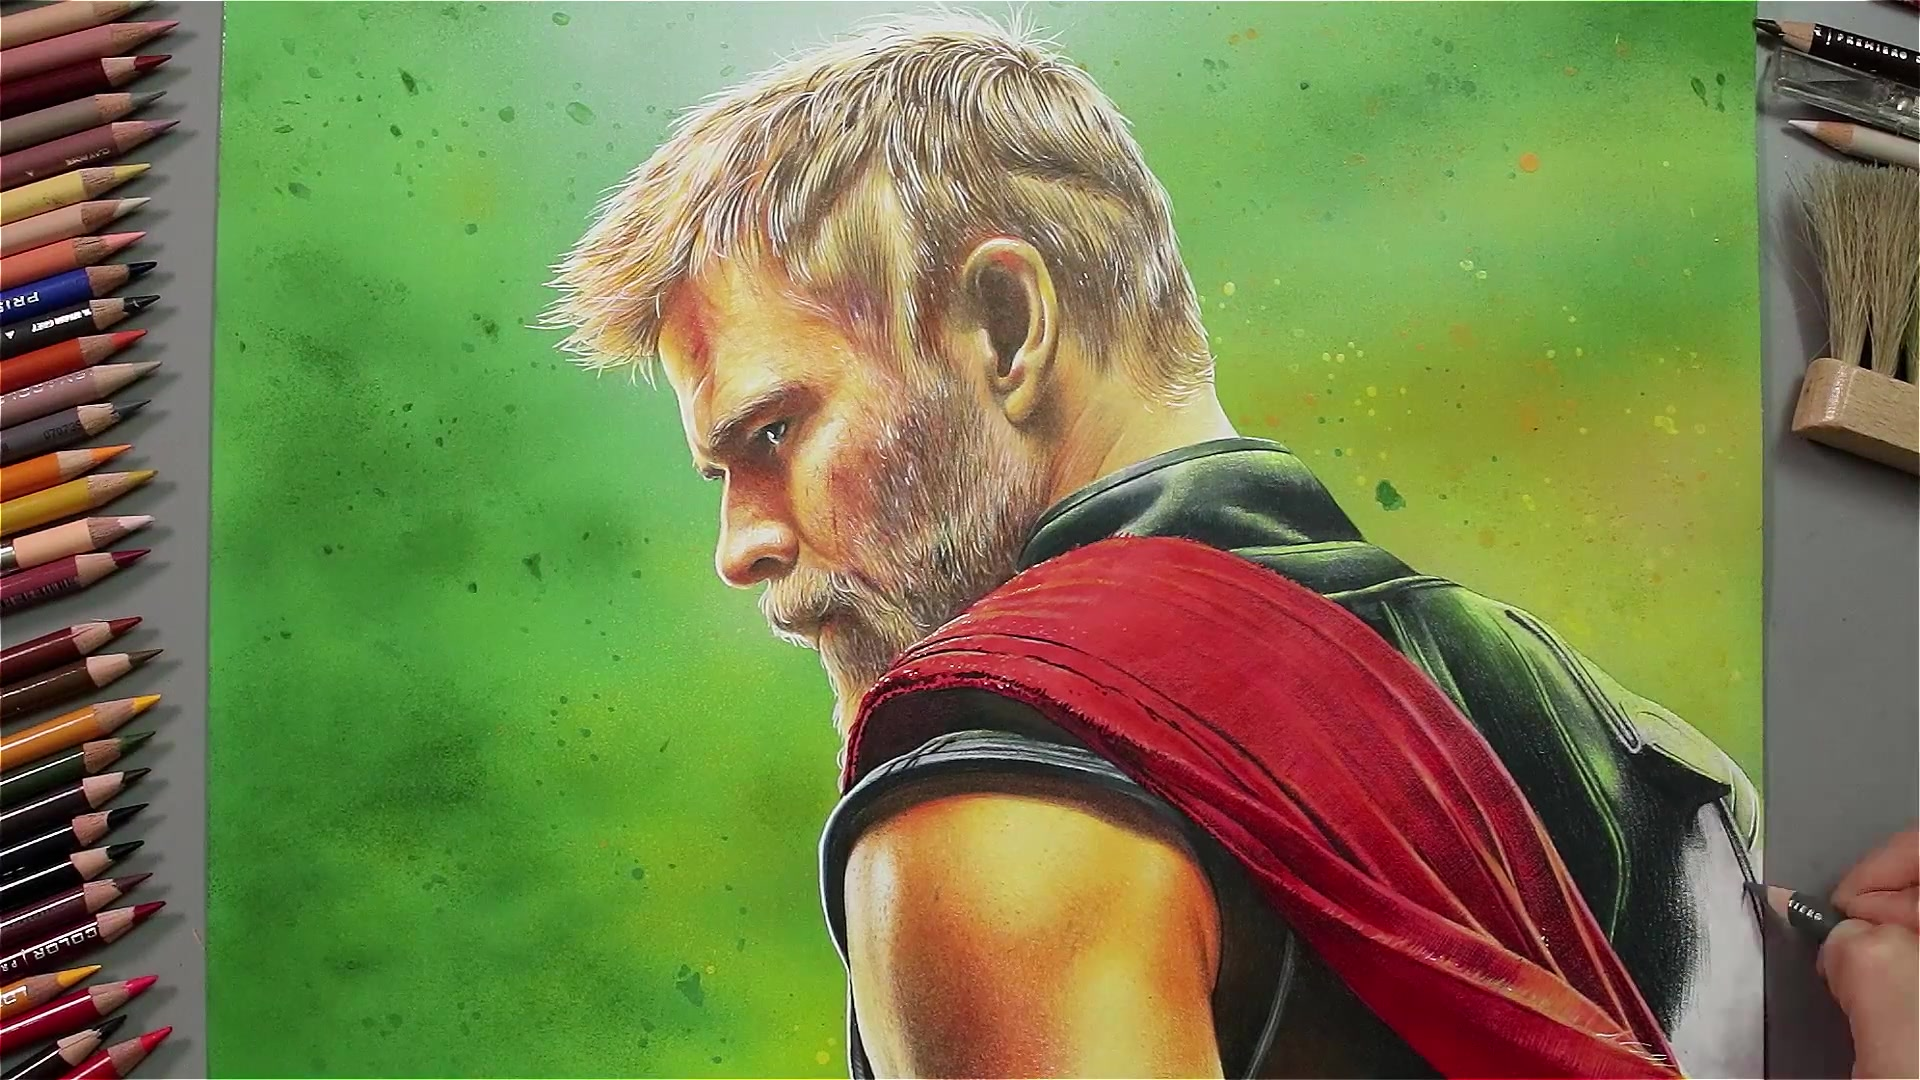 Drawing Hands Episode 59: Speed Drawing Chris Hemsworth of 'Thor Ragnarok'